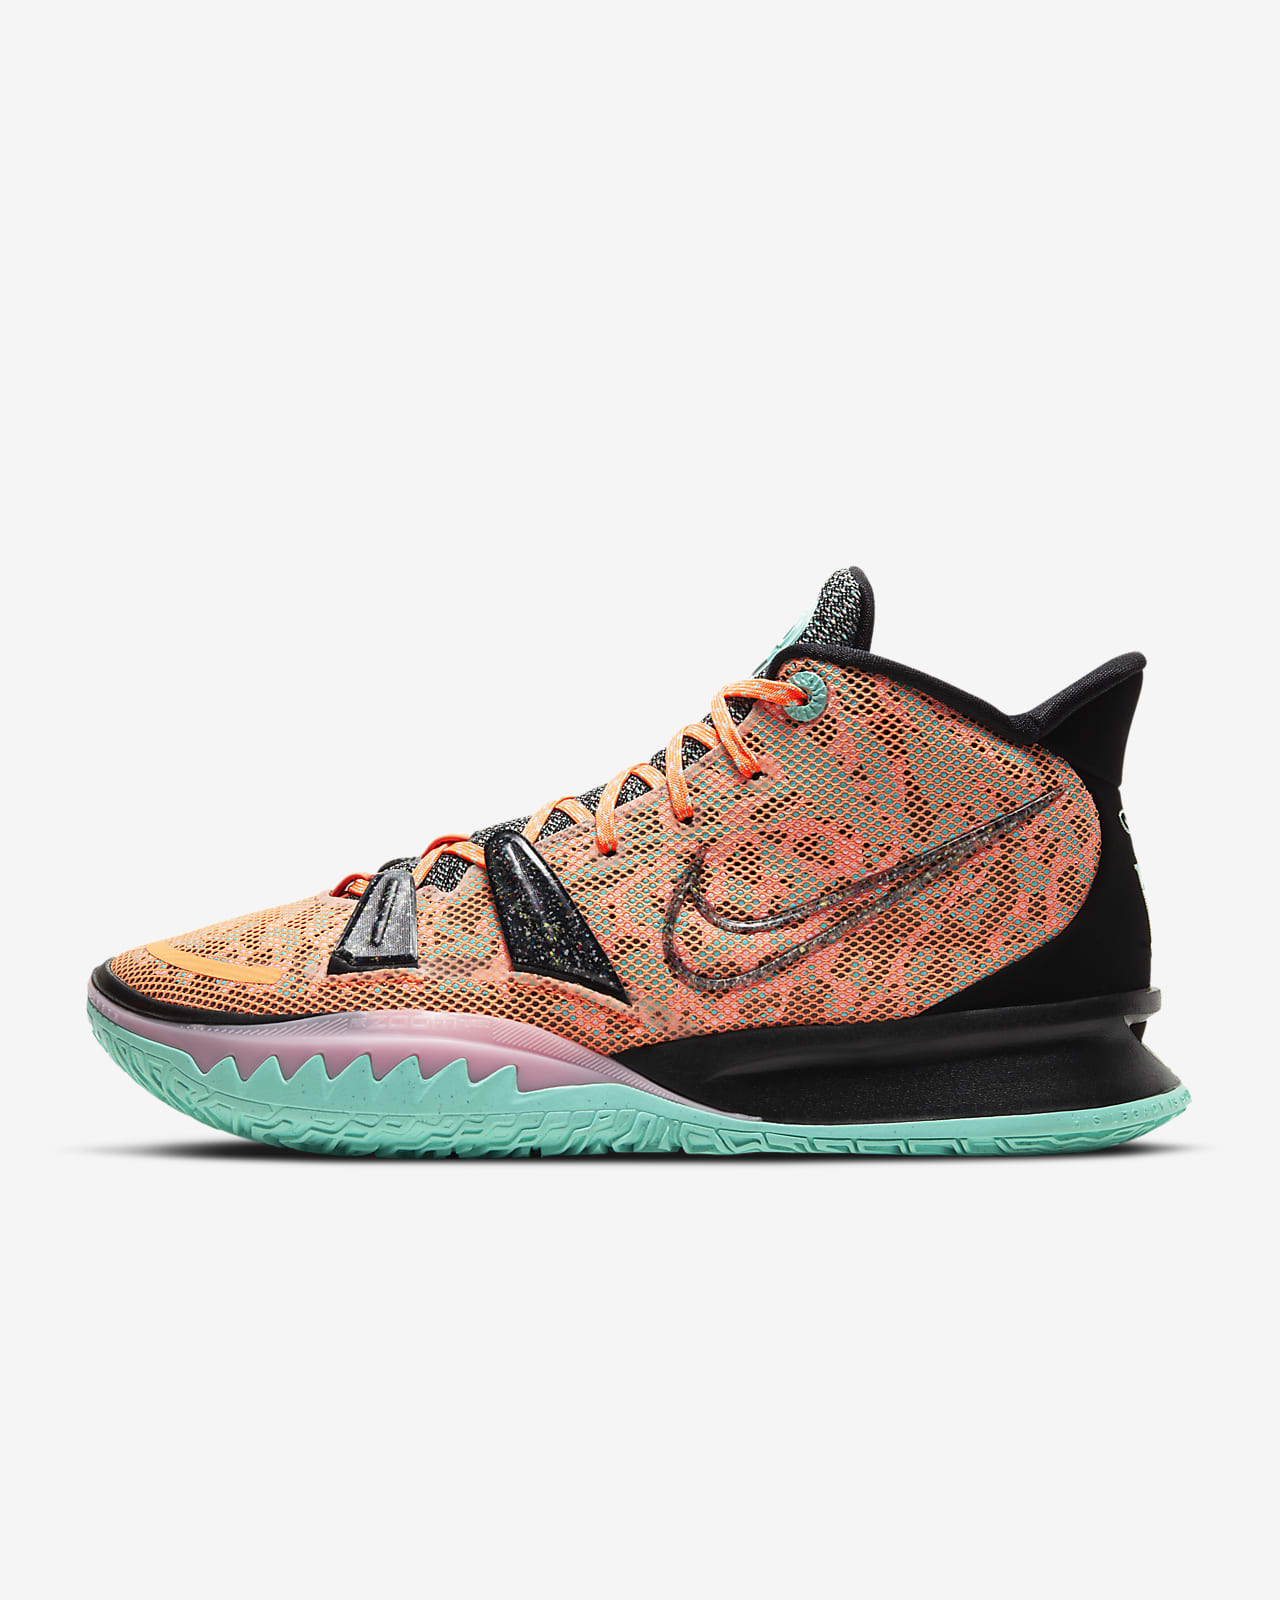 """Kyrie 7 EP """"Play for the Future"""" 籃球鞋"""